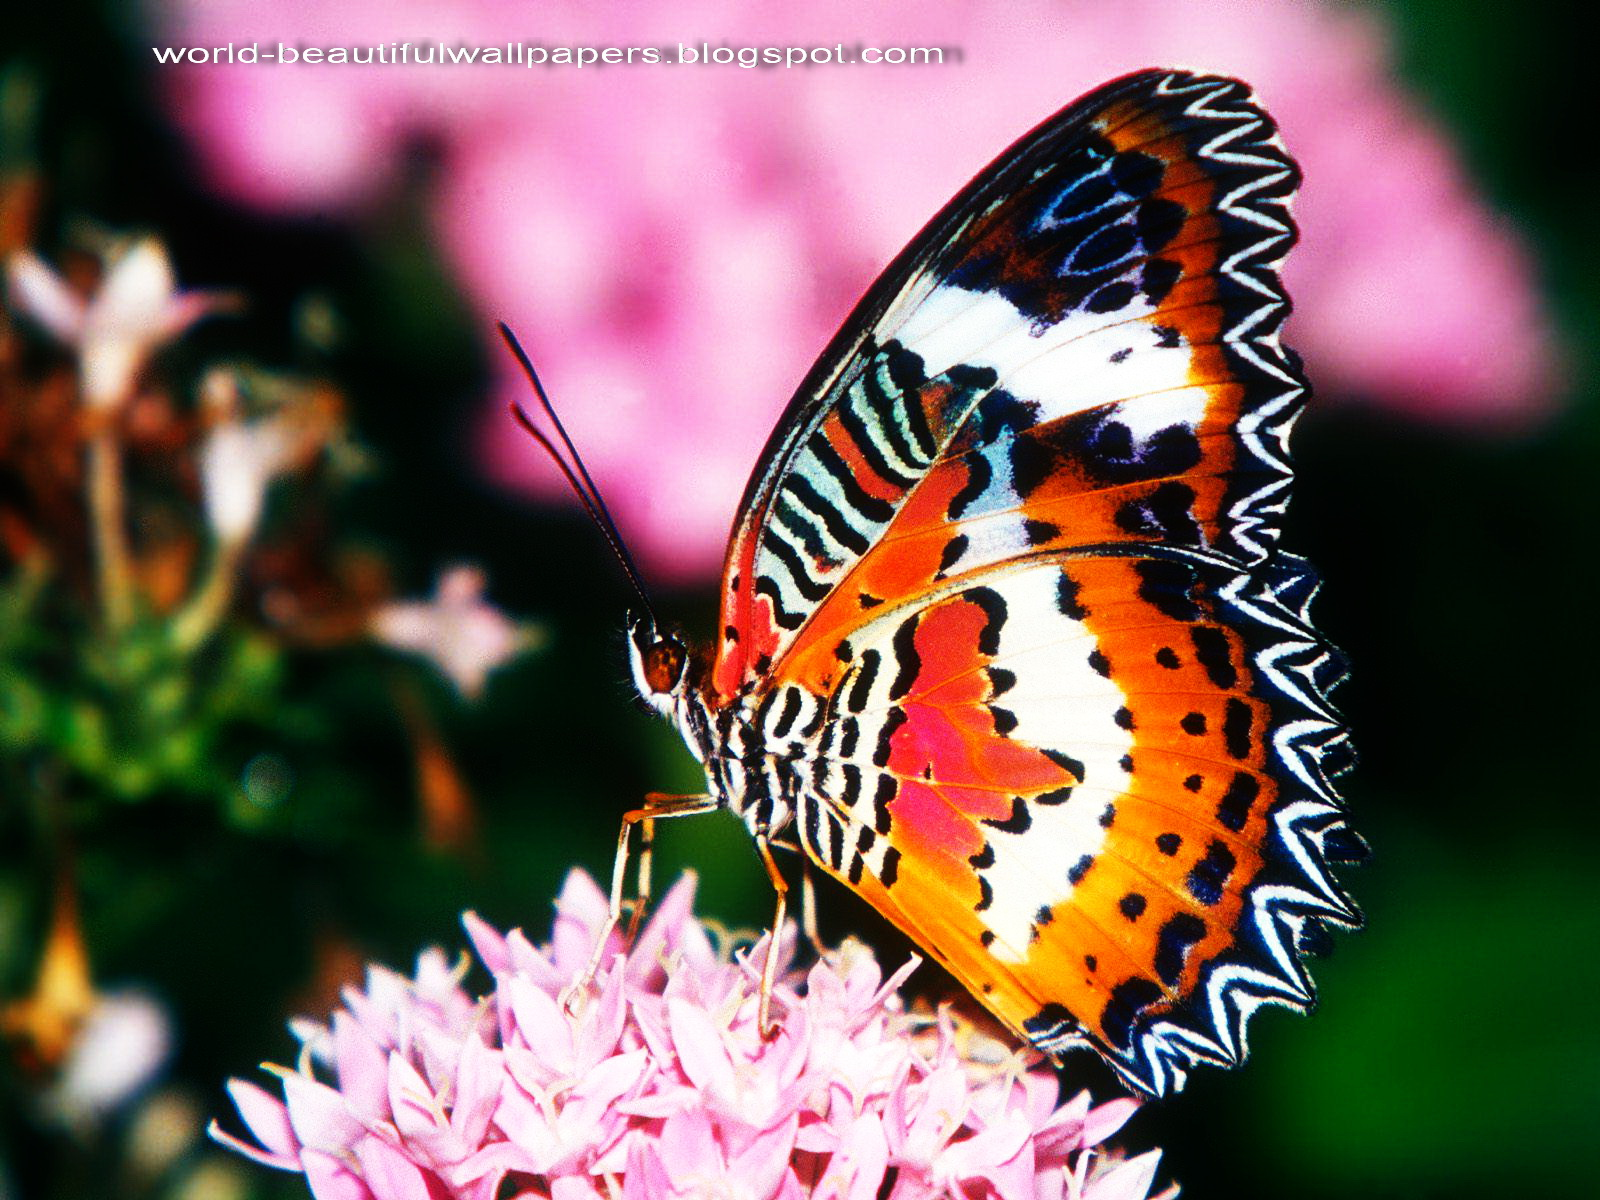 Beautiful Wallpapers: Beautiful Butterflies Wallpaper